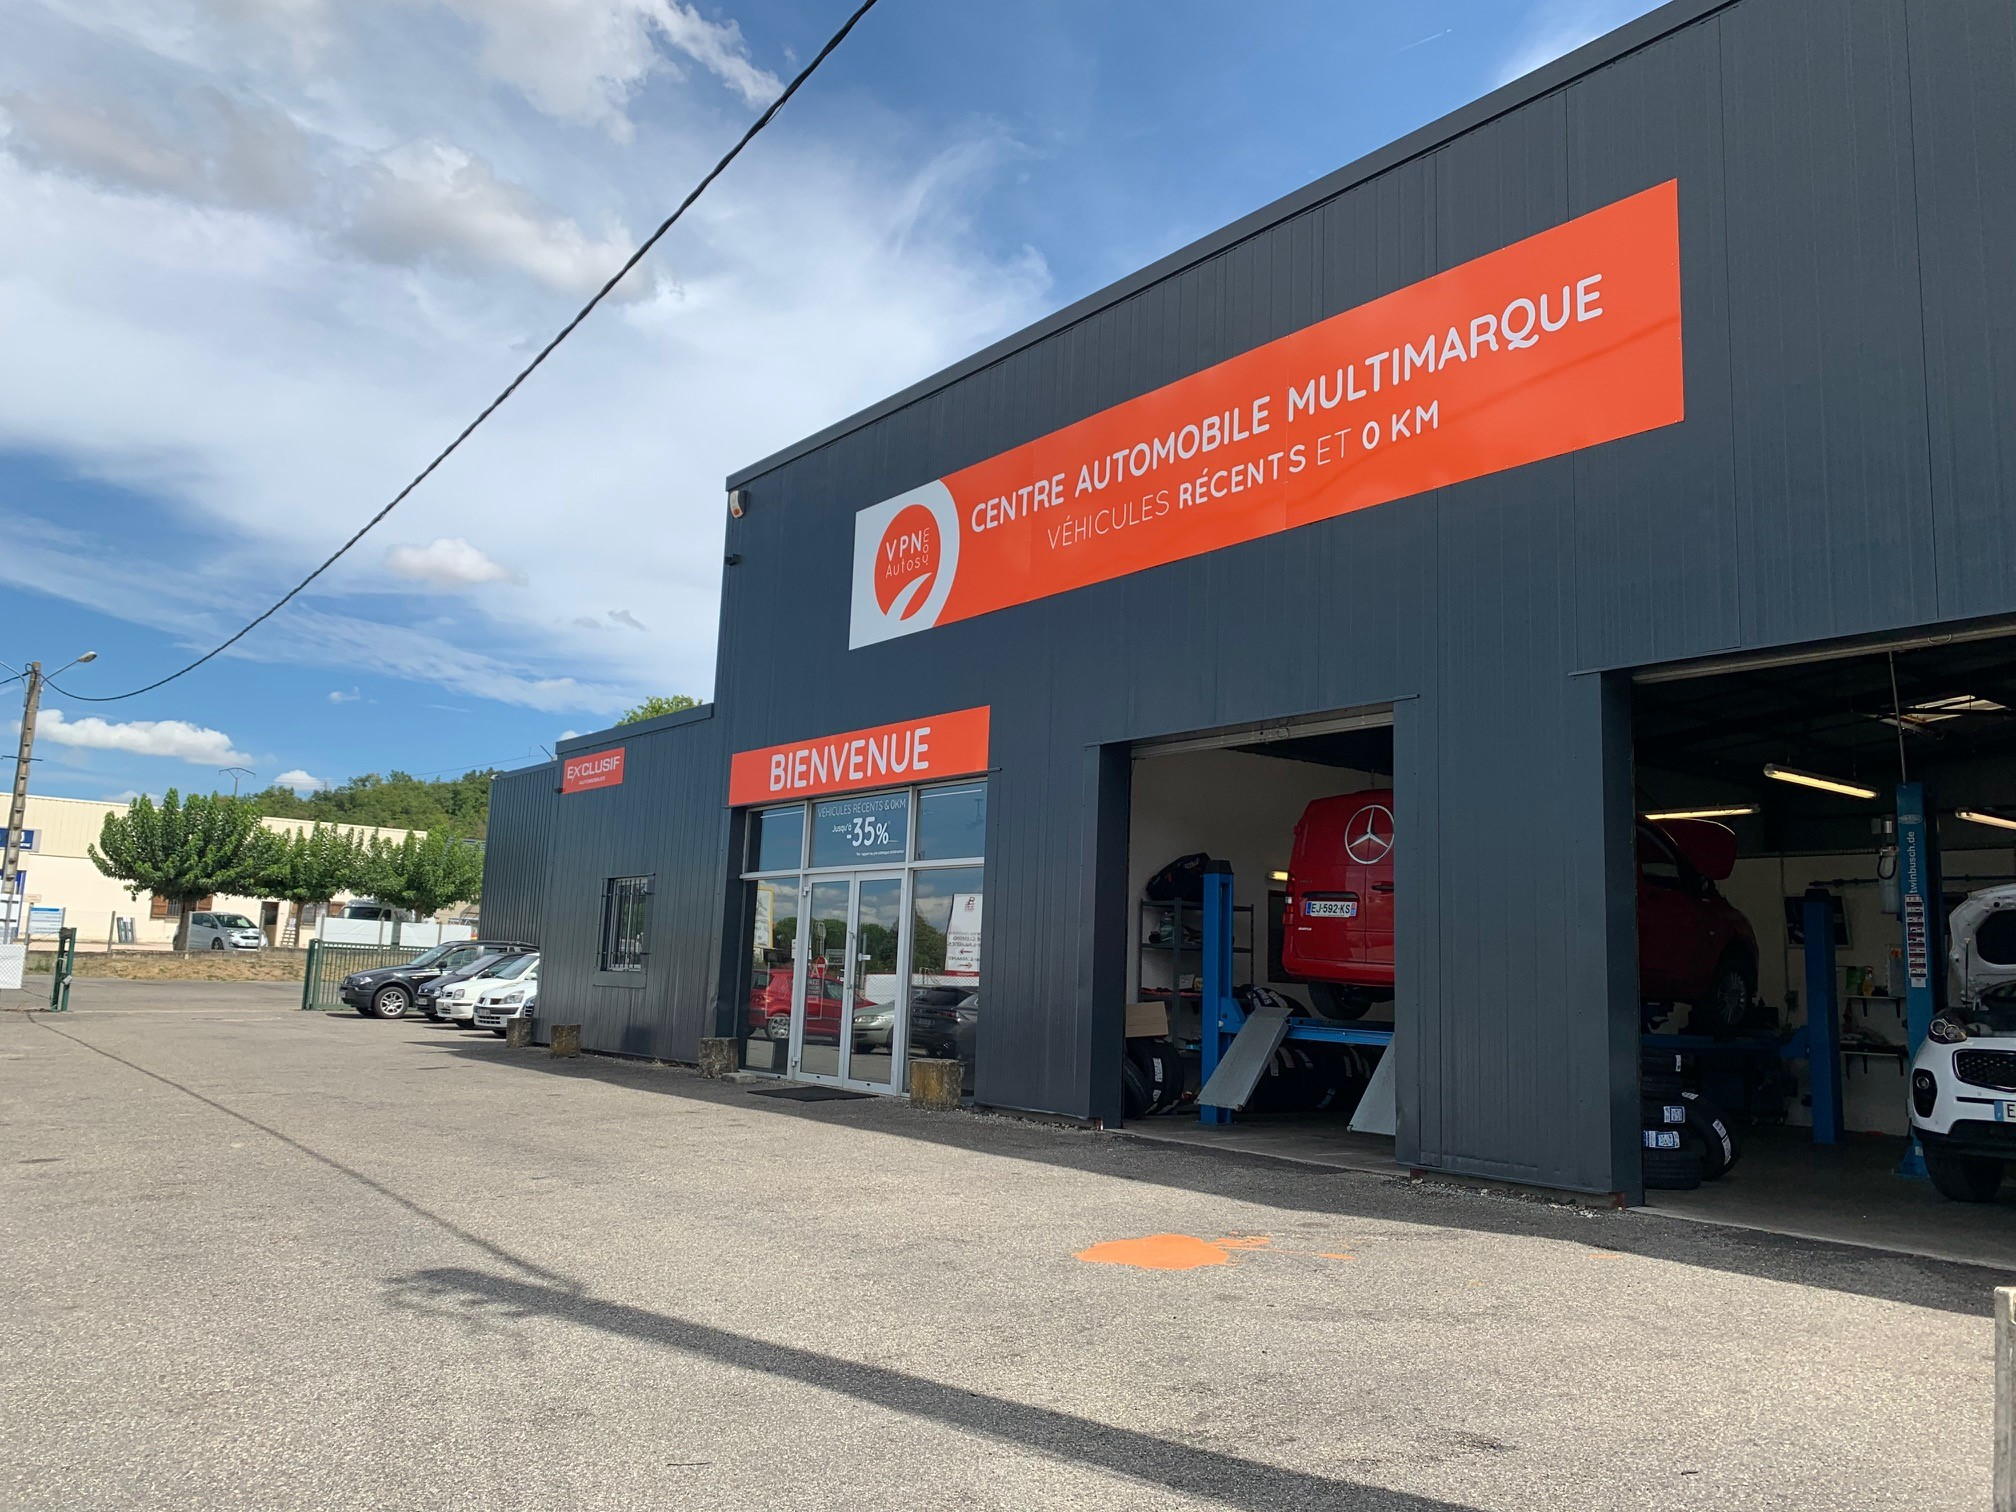 VPN Autos Auch - First Stop - Exclusif Automobile